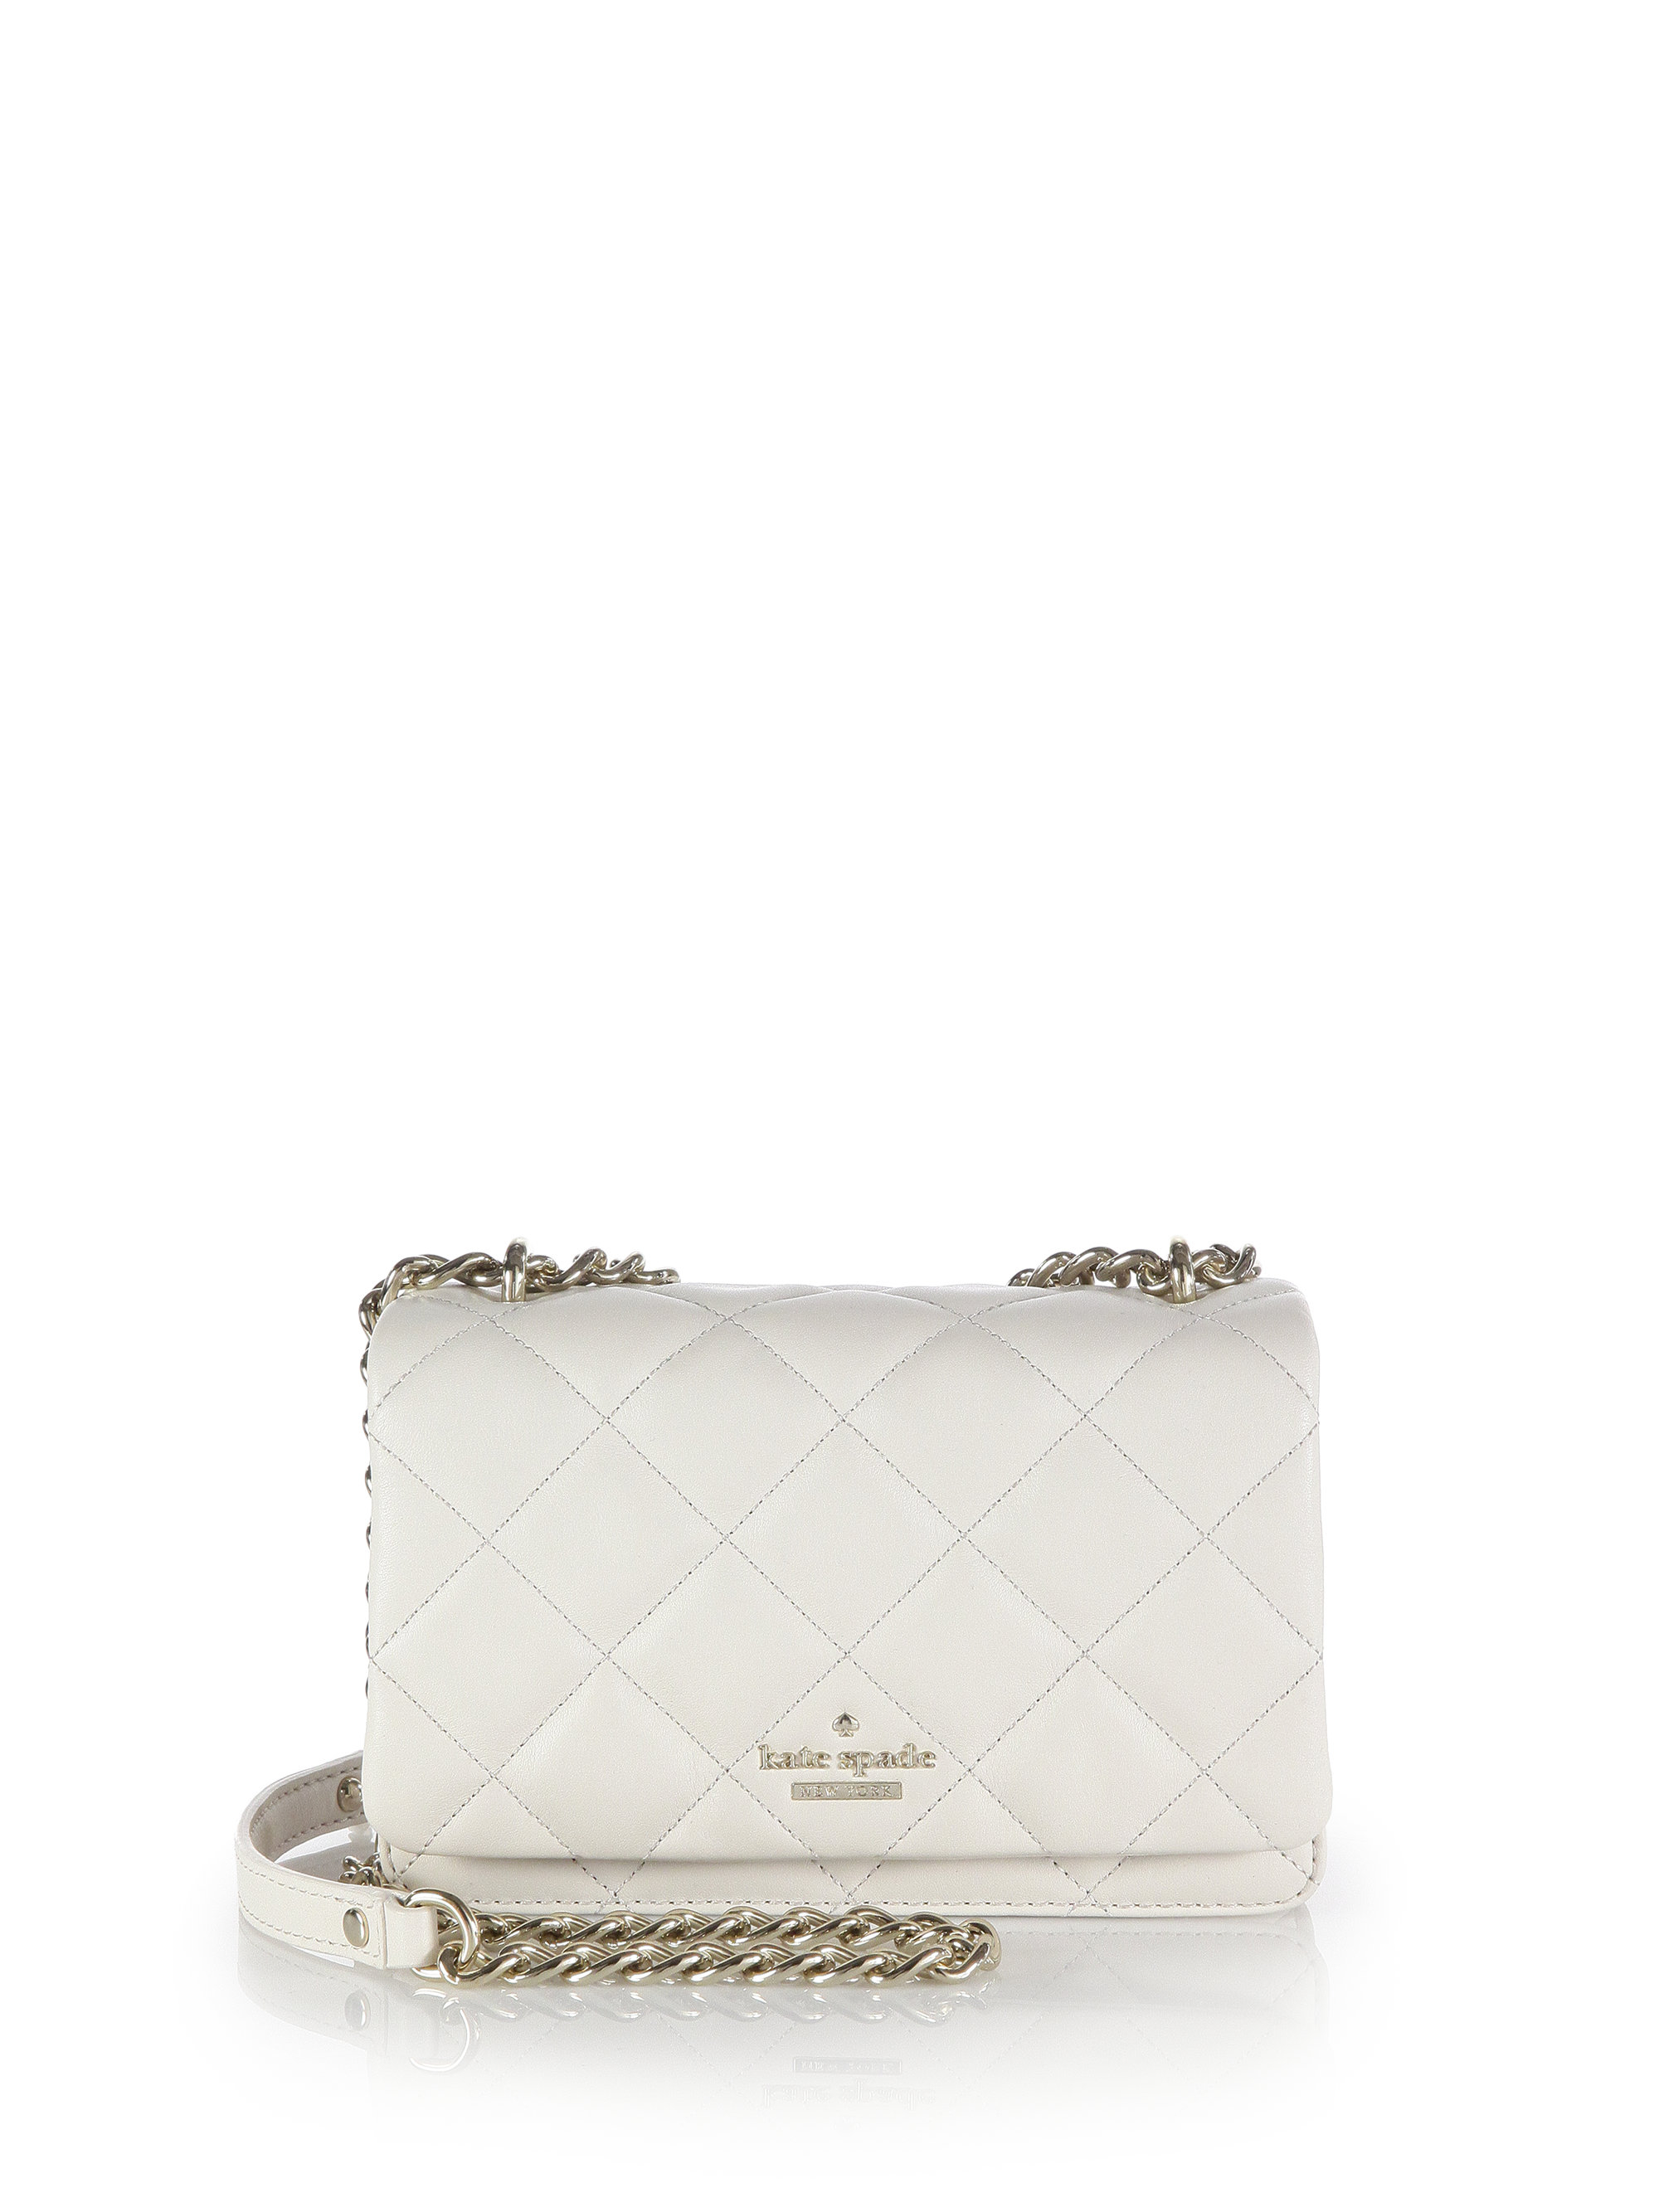 Kate Spade New York Emerson Place Vivenna Quilted Leather